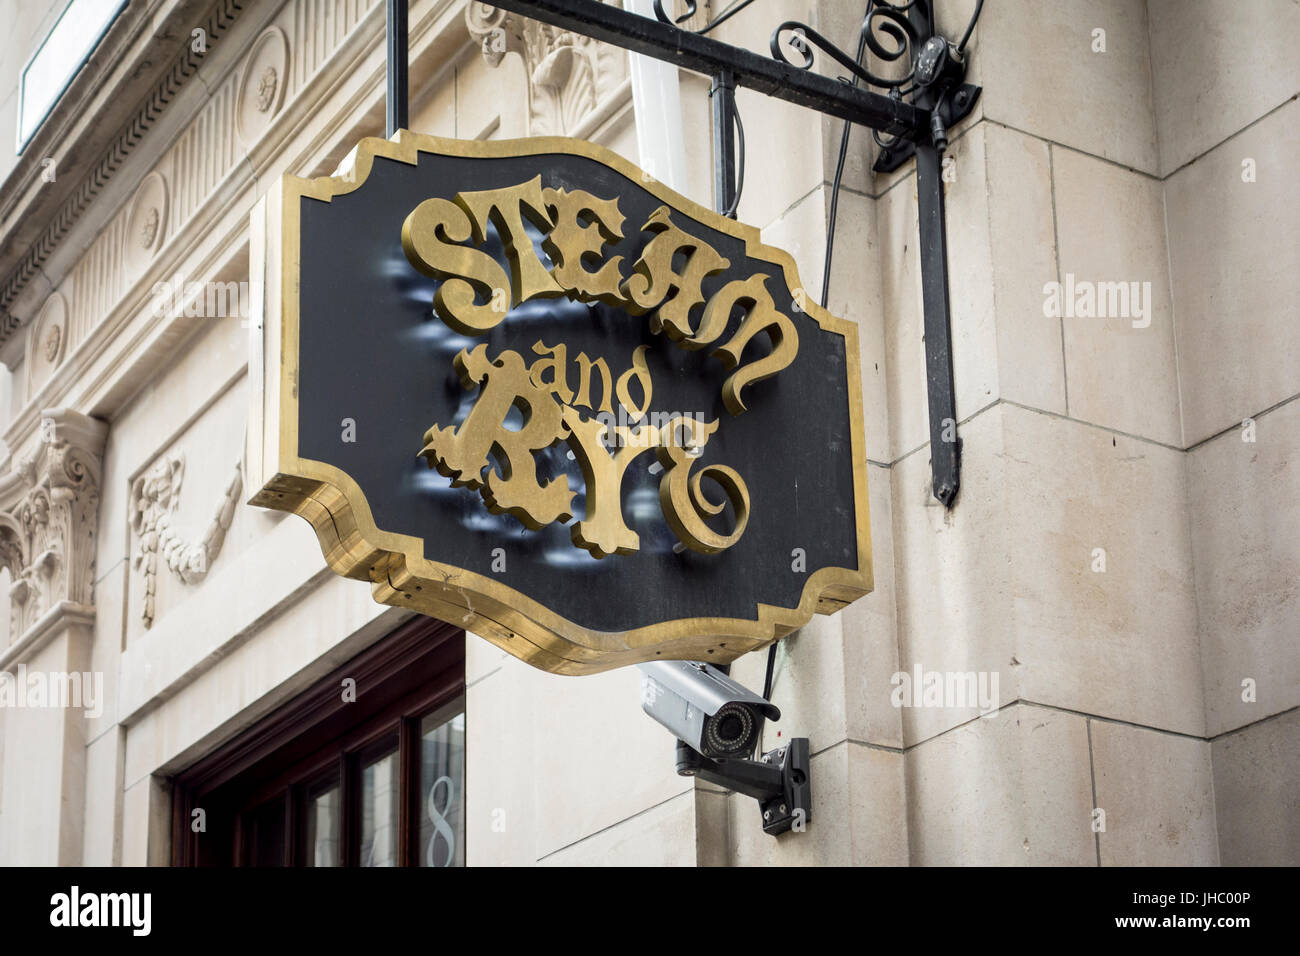 Steam and Rye pub bar sign, City of London, UK - Stock Image